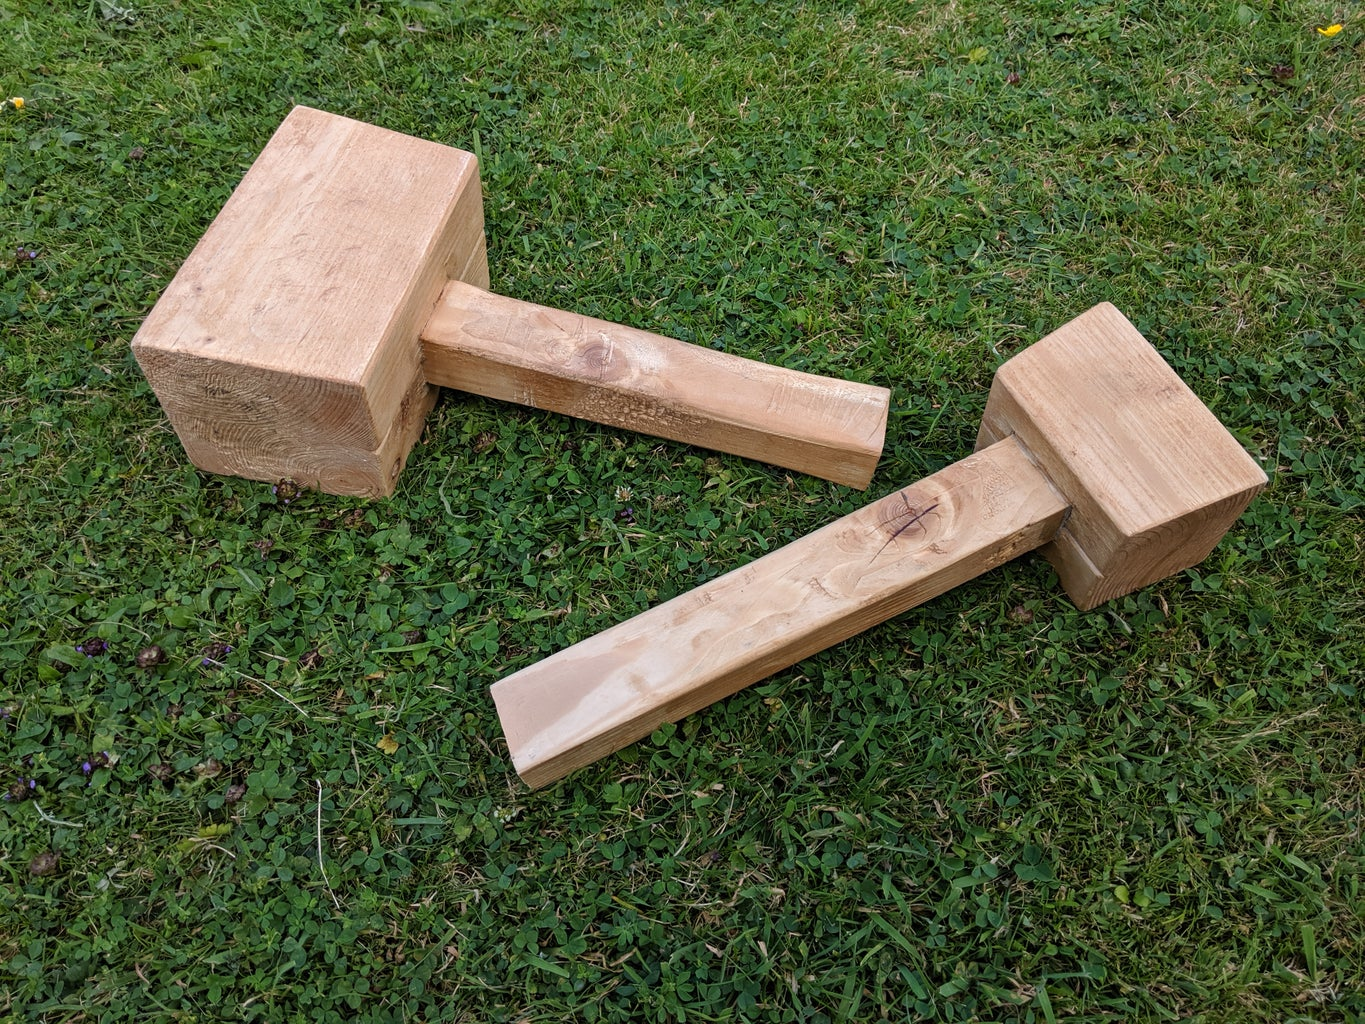 Making the Mallet